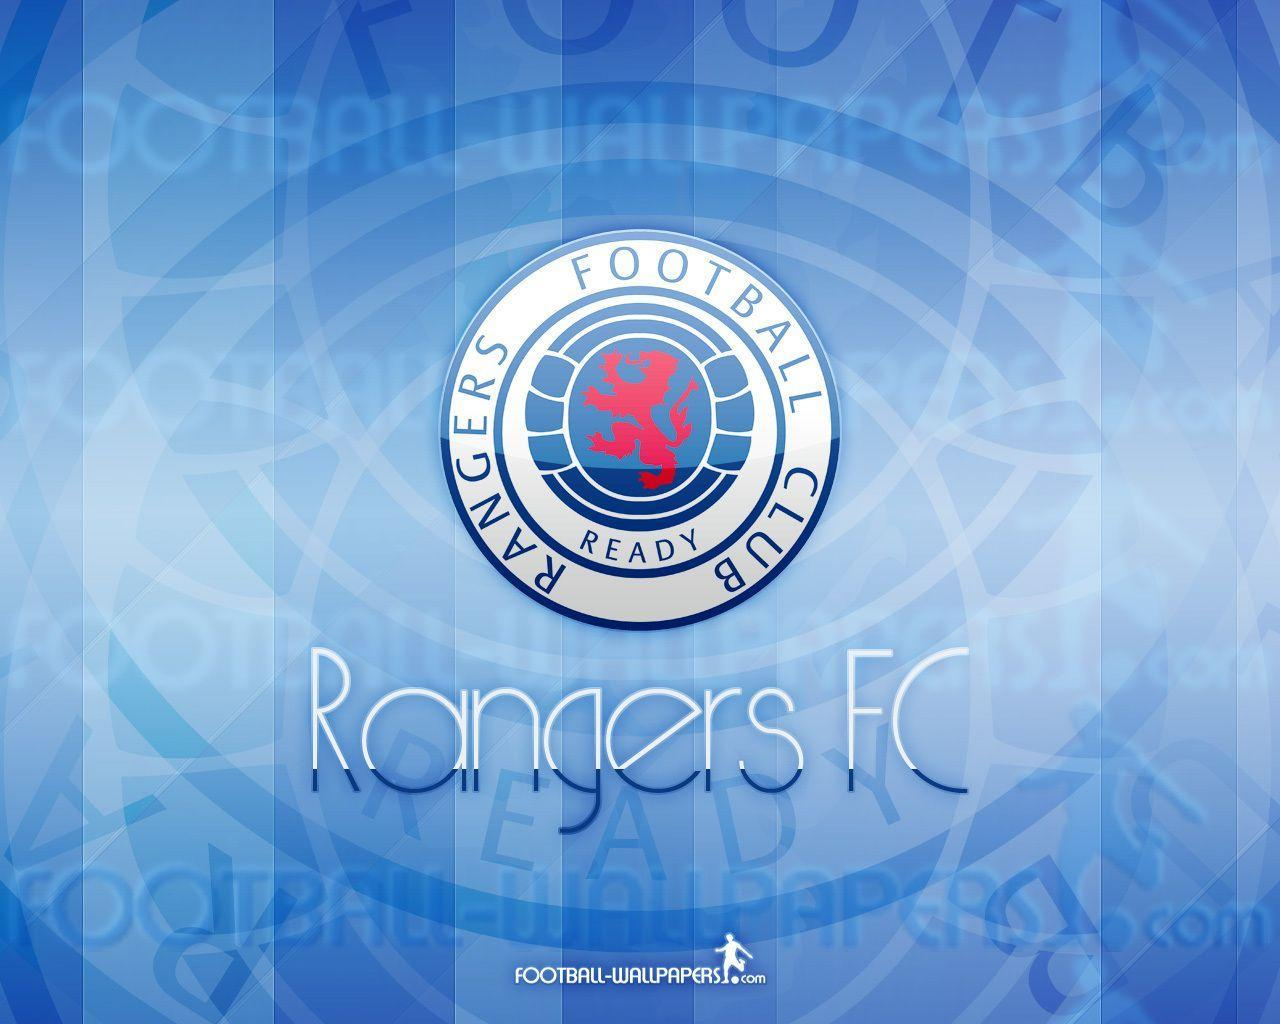 Rangers Football Club image Rangers F.C. HD wallpapers and